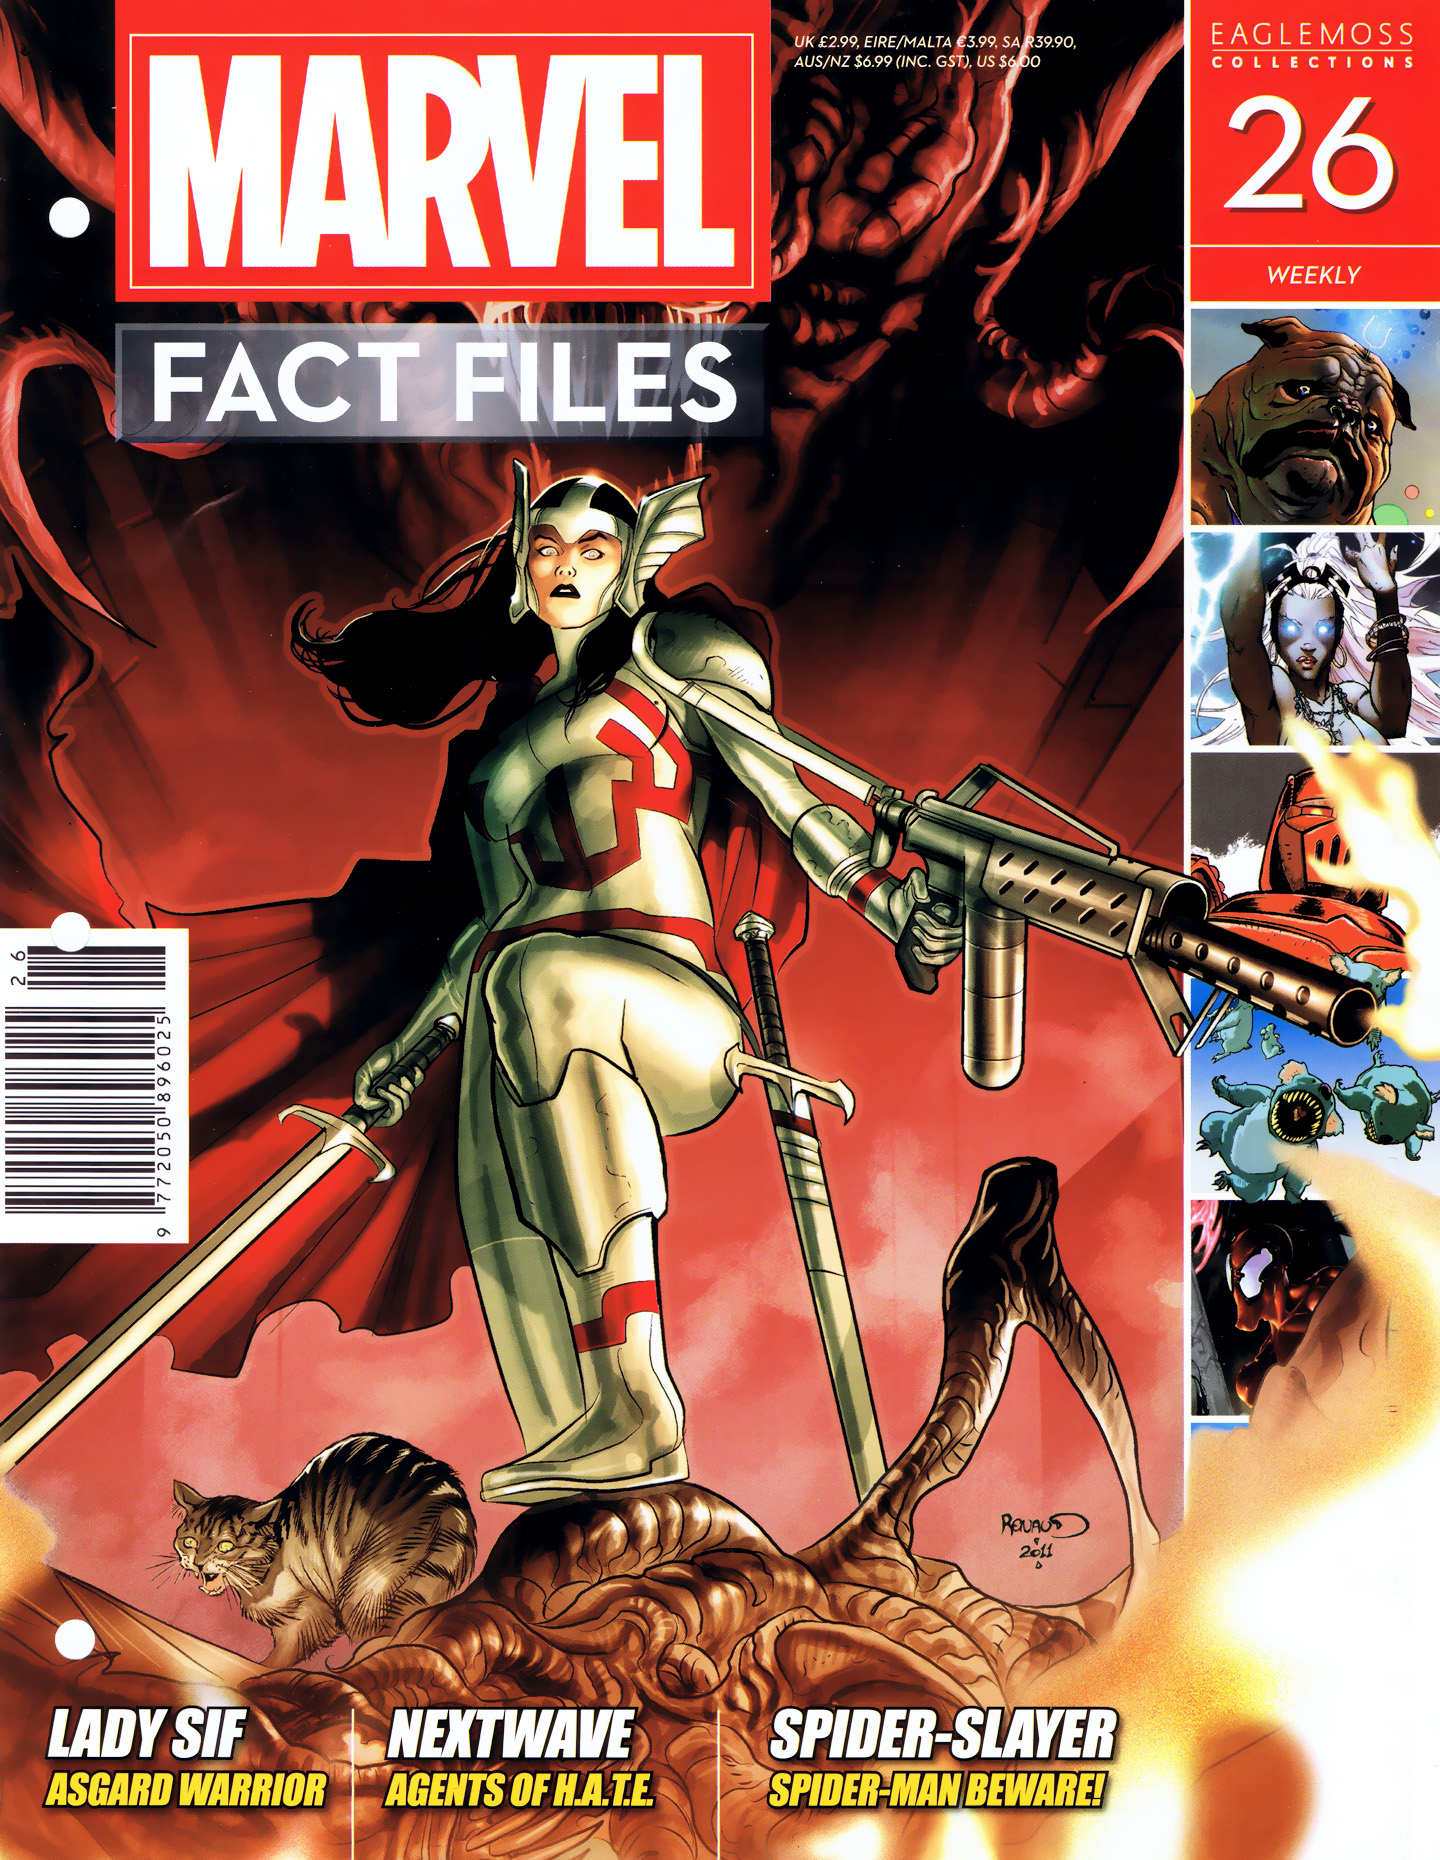 Marvel Fact Files 26 Page 1